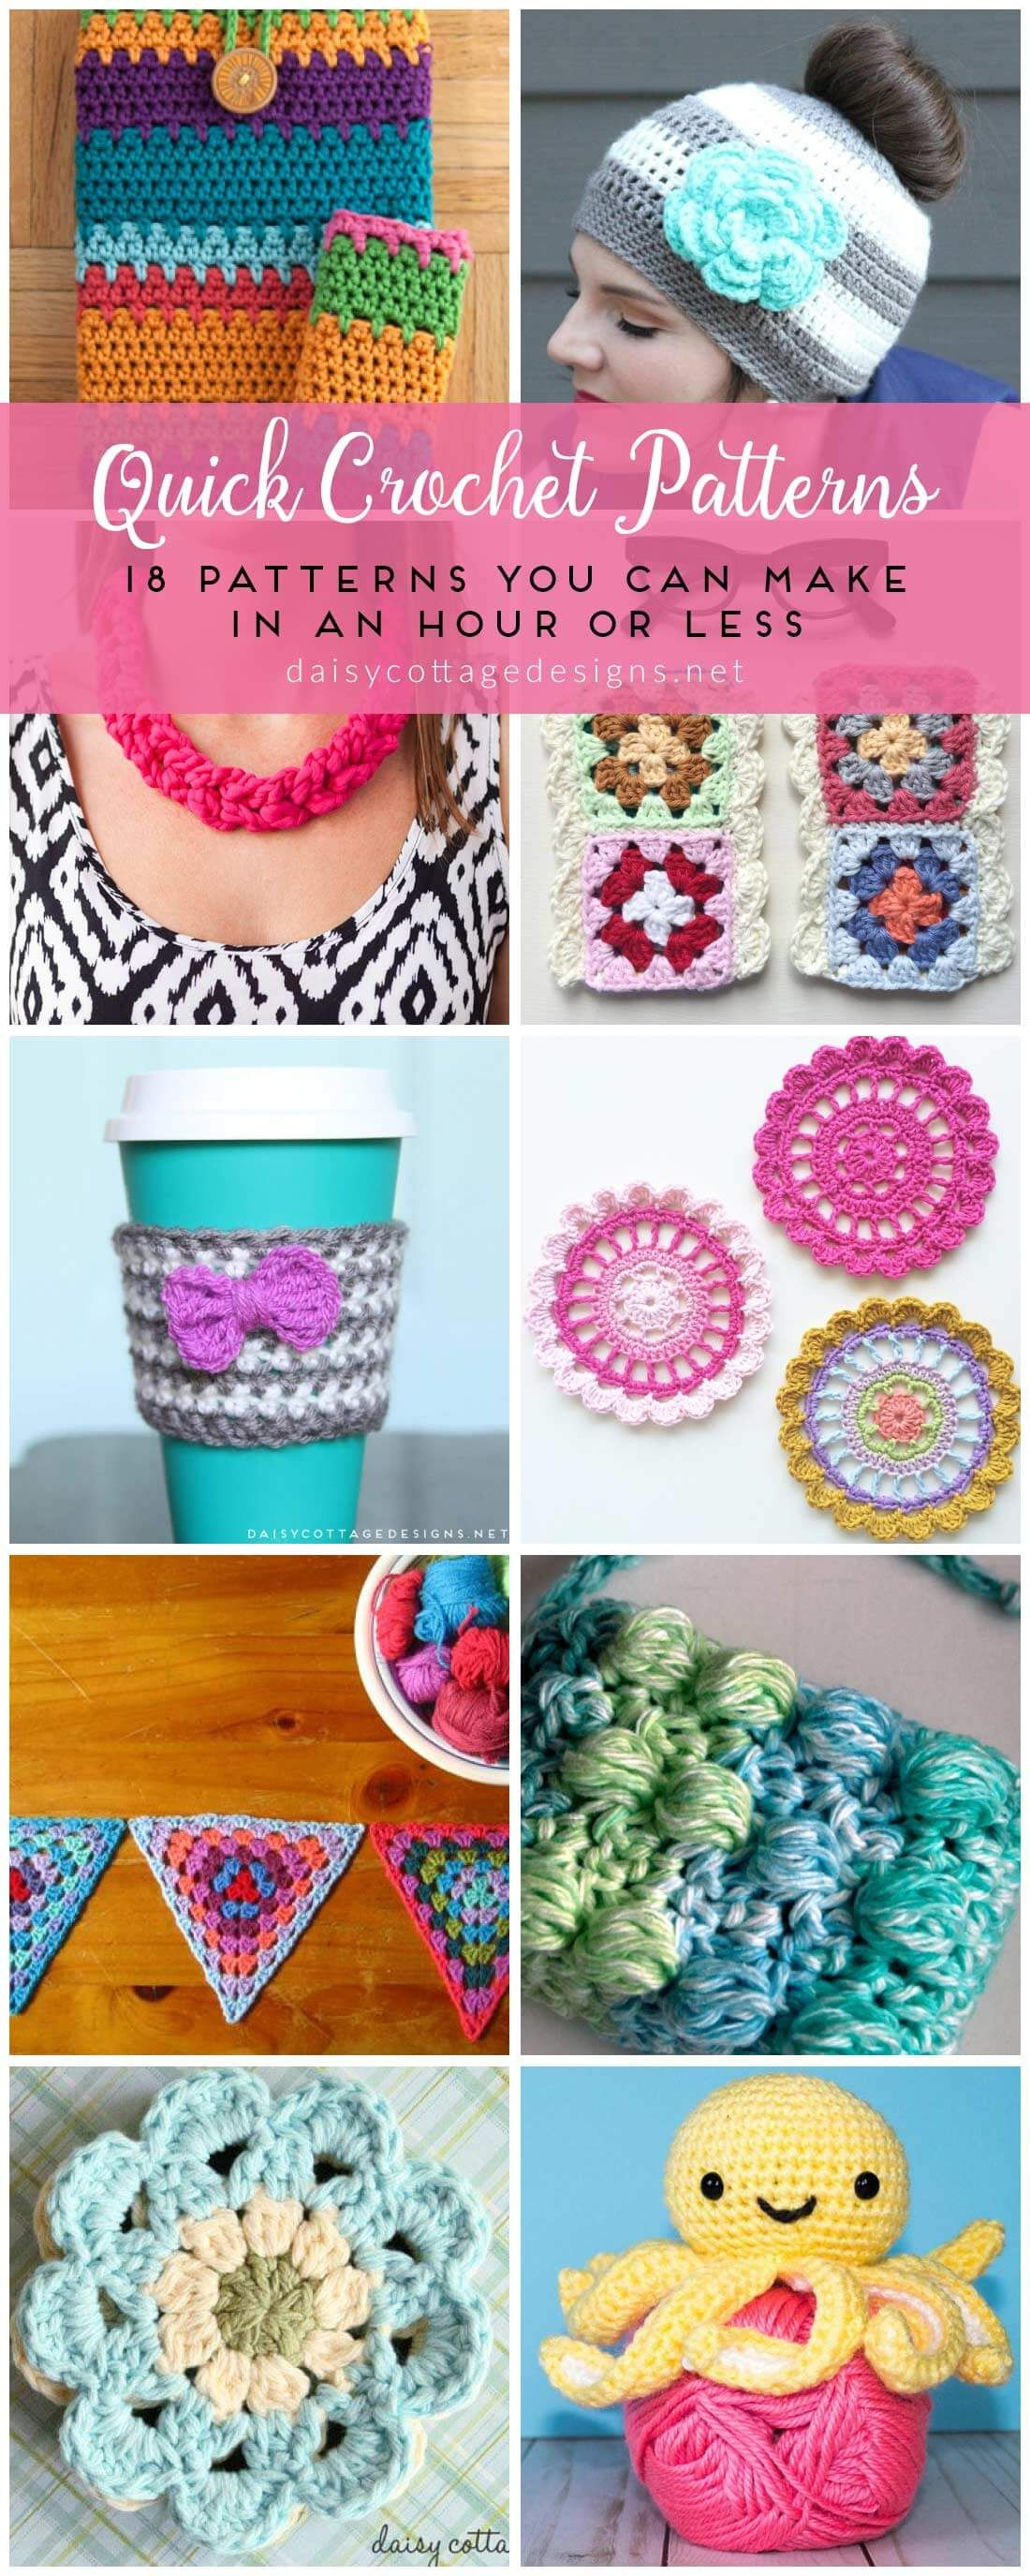 Easy Crochet Patterns - Free Crochet Patterns on | Pinterest | Fast ...